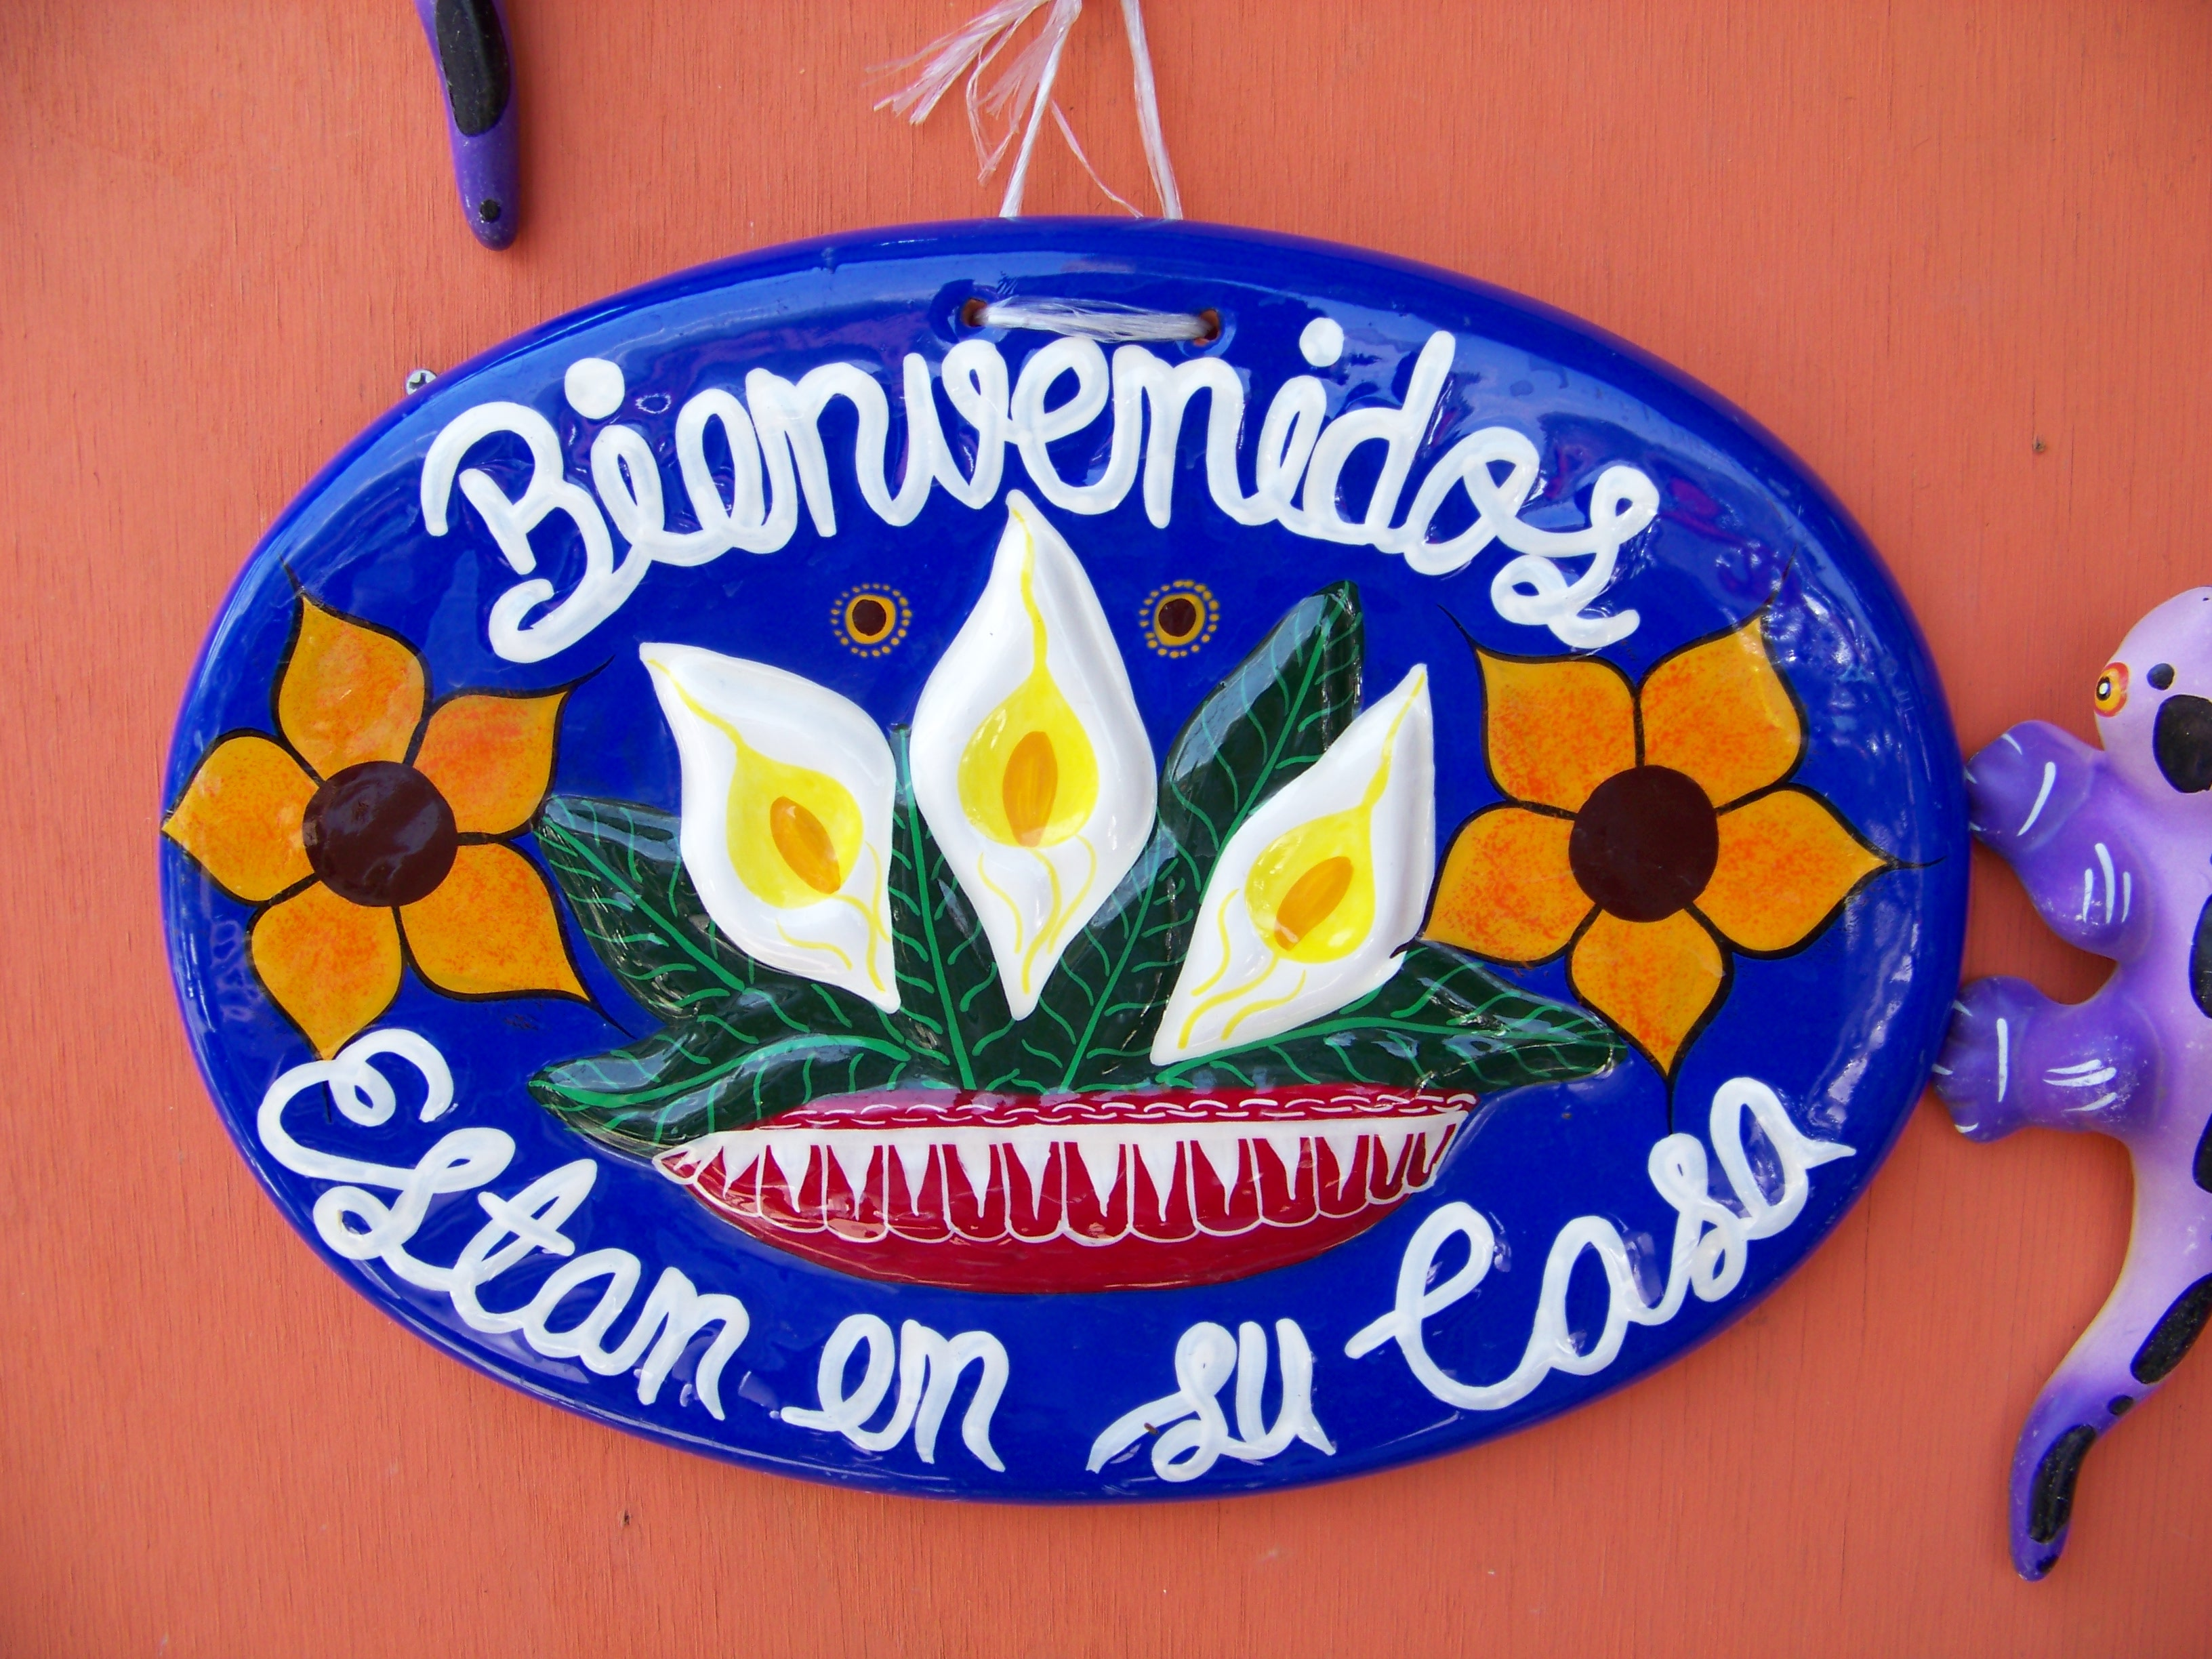 Mexican welcome sign, Word, Ornate, Wooden, White, HQ Photo